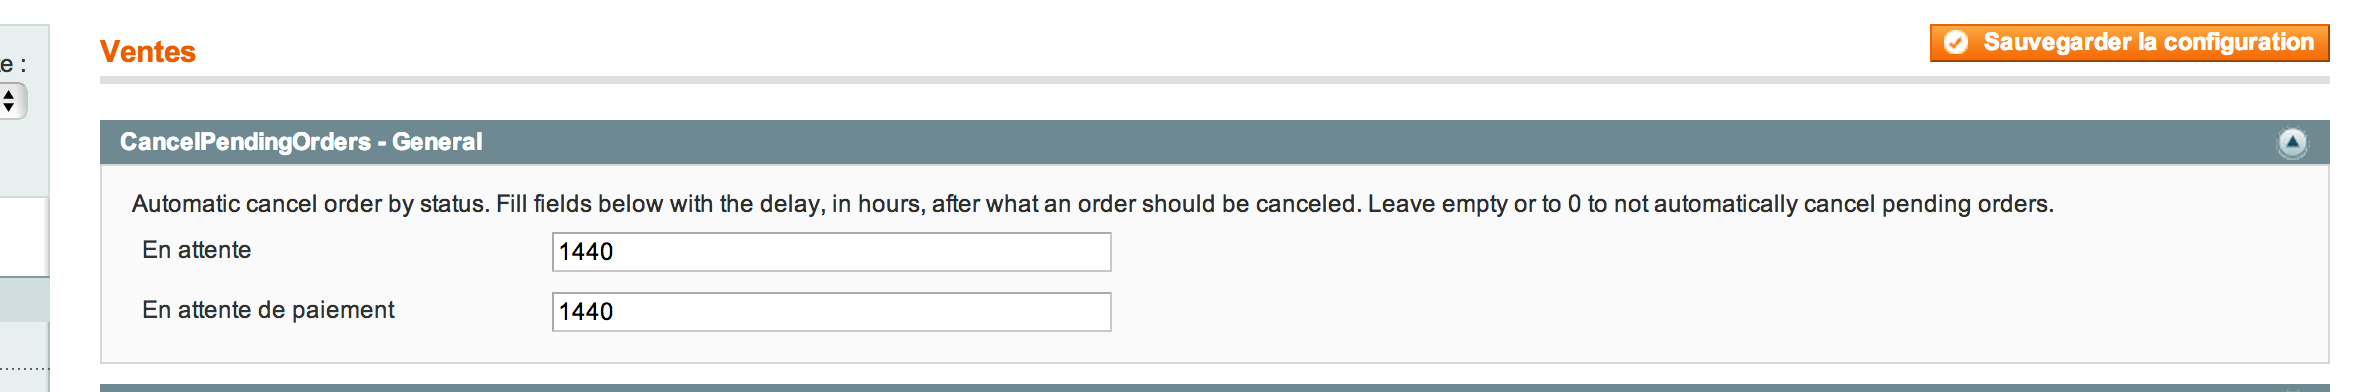 Cancel Pending Orders - Configuration